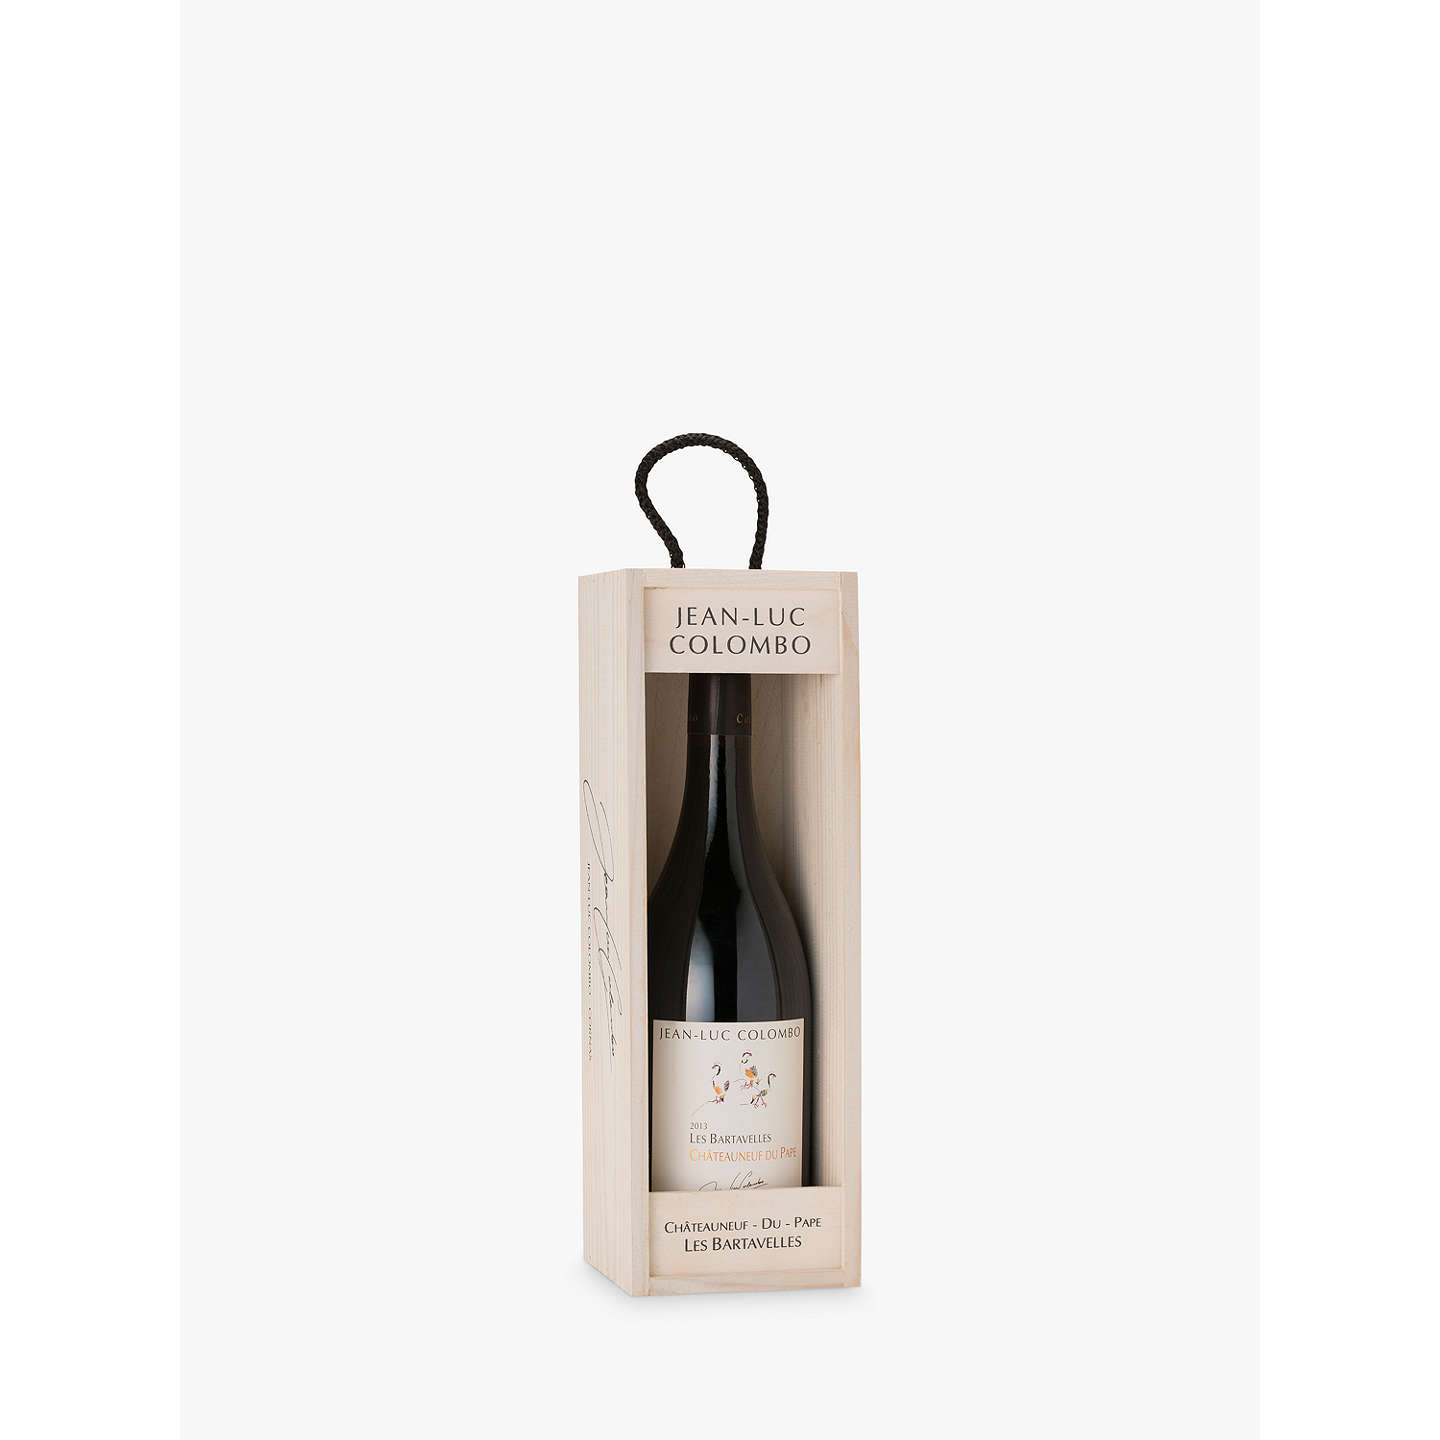 BuyJean-Luc Colombo Chateunauf De Pape, 75cl Online at johnlewis.com